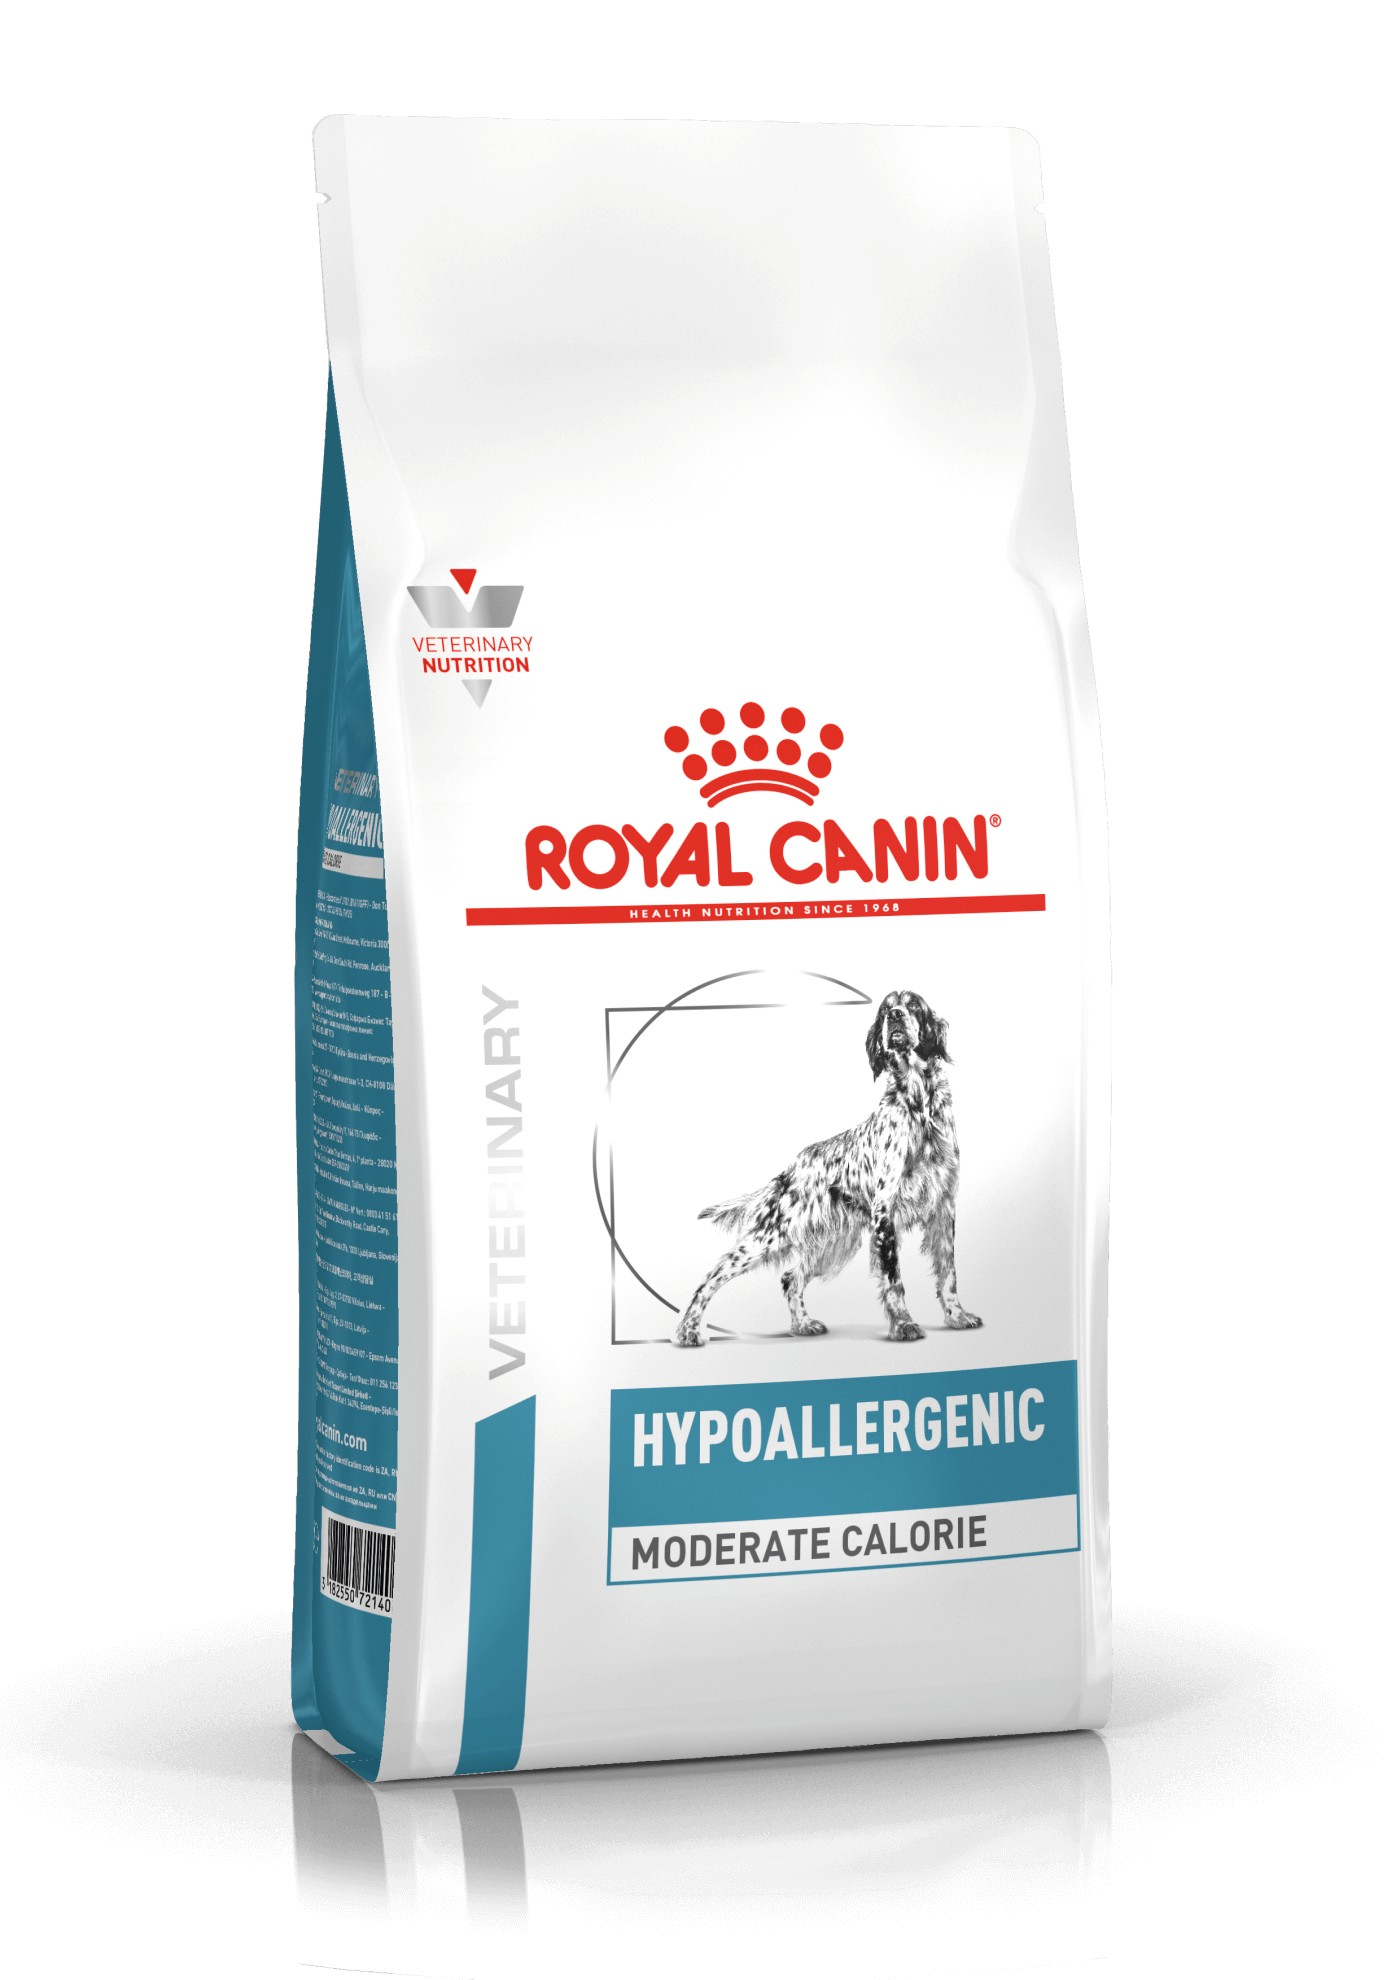 Royal Canin Hypoallergenic Moderate Calorie hondenvoer